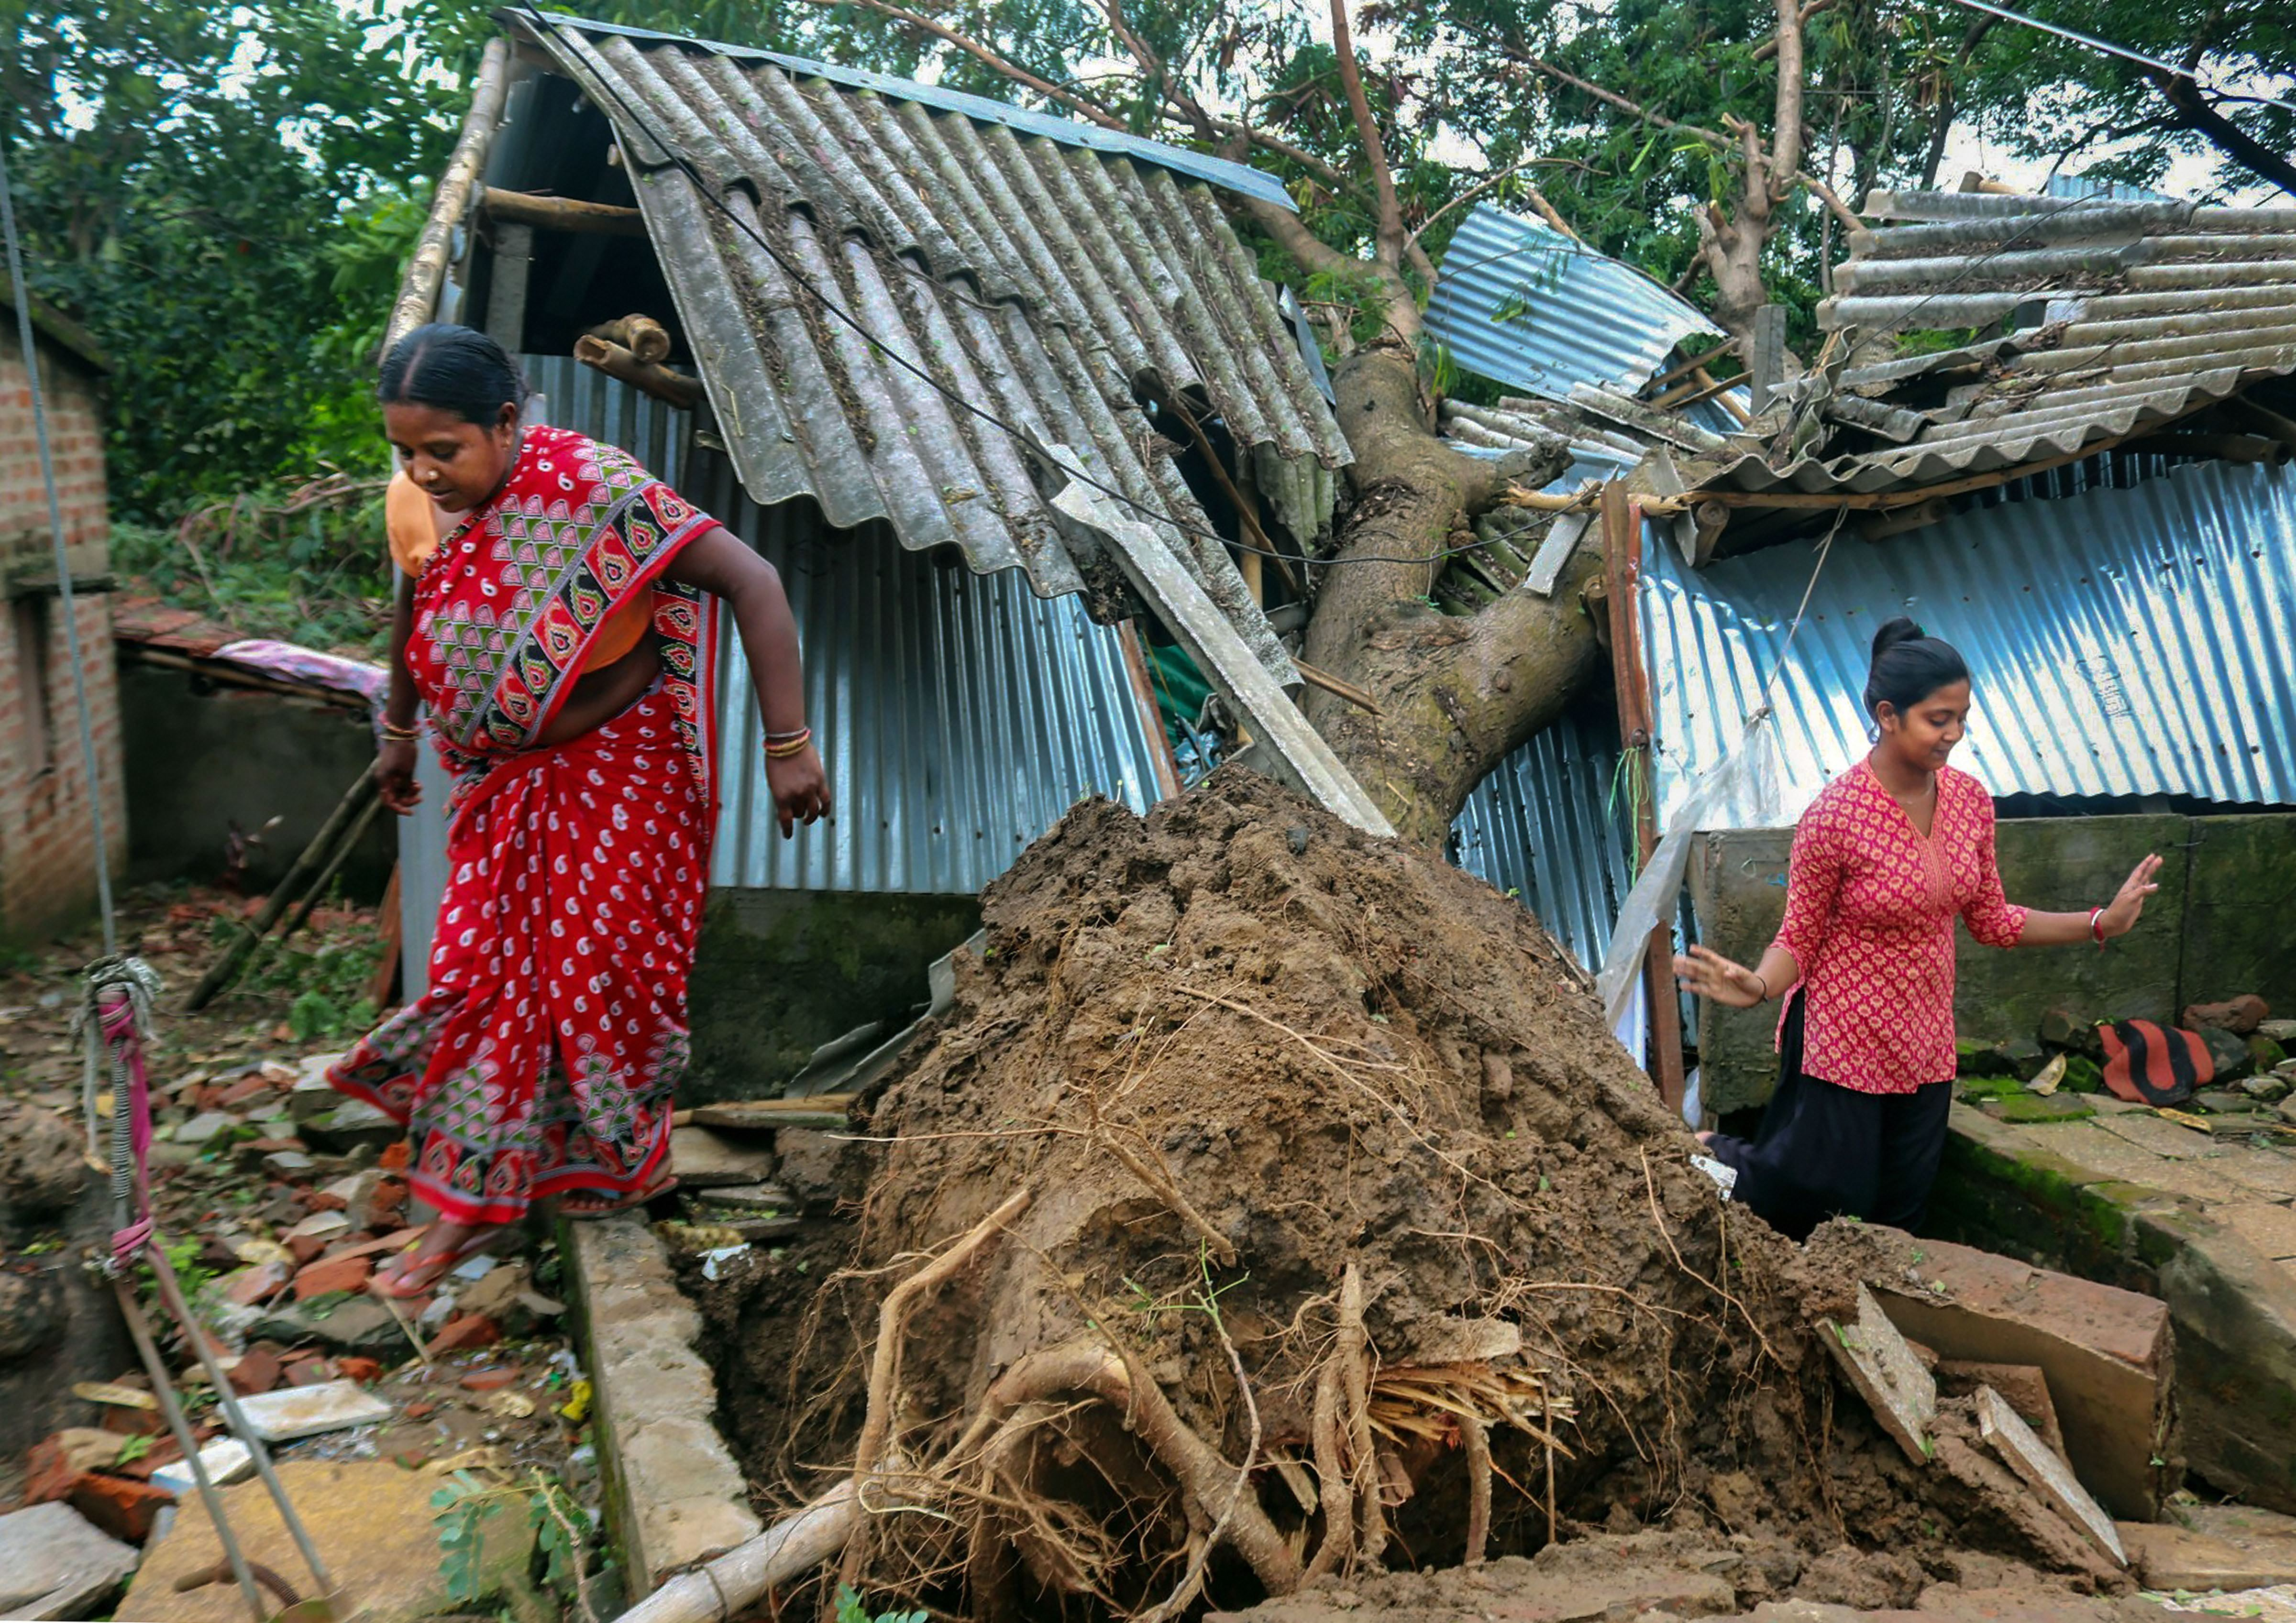 Residents inspect their damaged house after a tree fell on it during cyclone Amphan, in Burdwan district, Thursday, May 21, 2020.